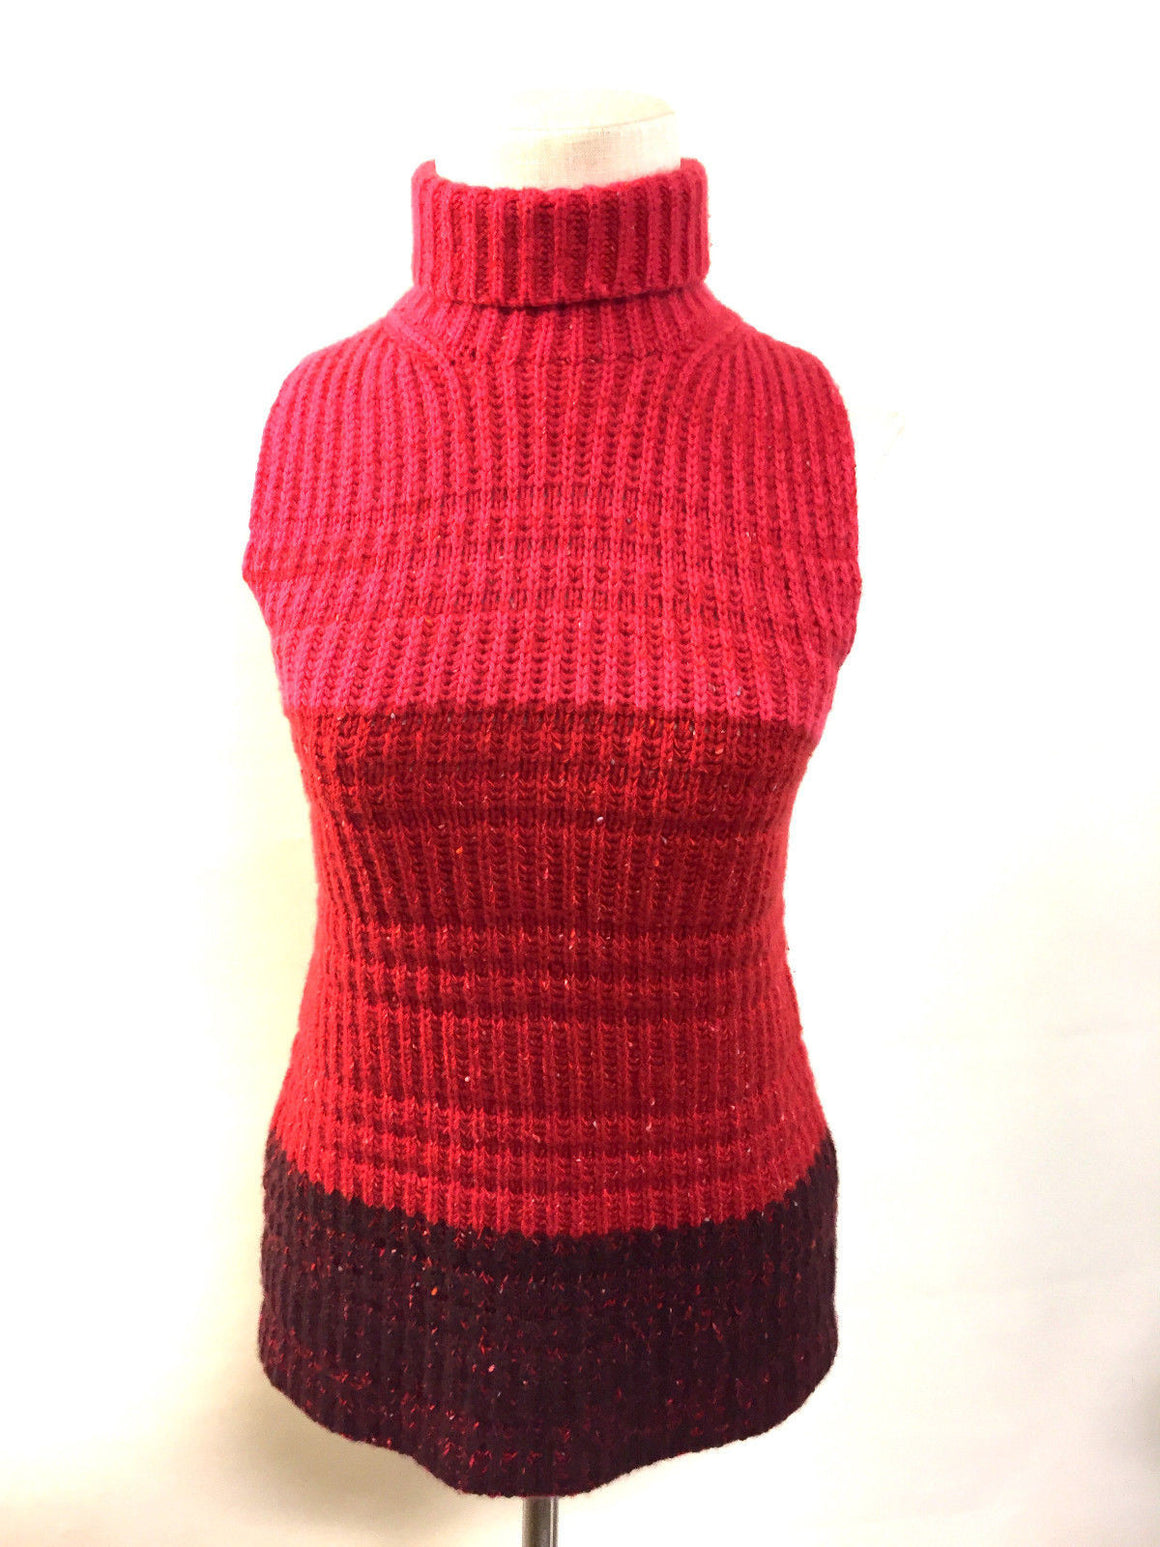 bisbiz.com TSE Vintage Red Rib-Knit Cashmere Color-Block Sleeveless Mock-Turtleneck Sweater Top Size: M/L - Bis Luxury Resale